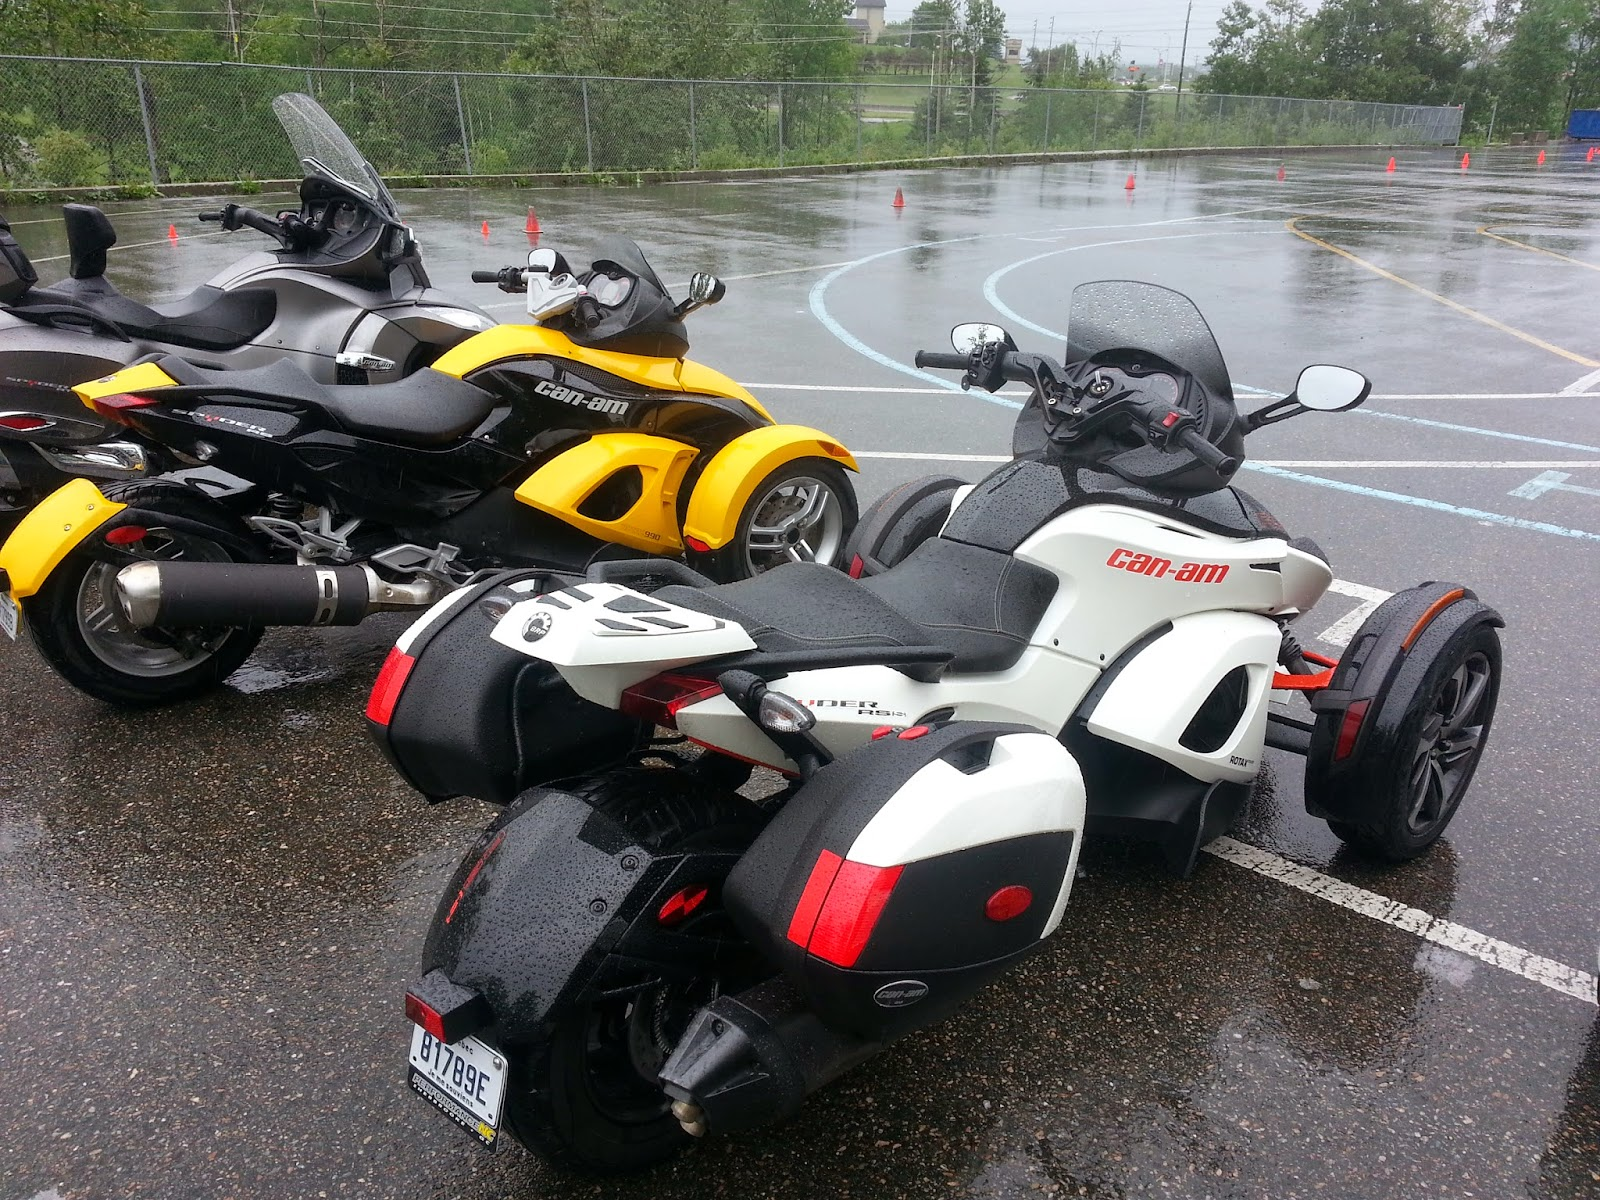 Optional hard bags suit the can am spyder rs very well